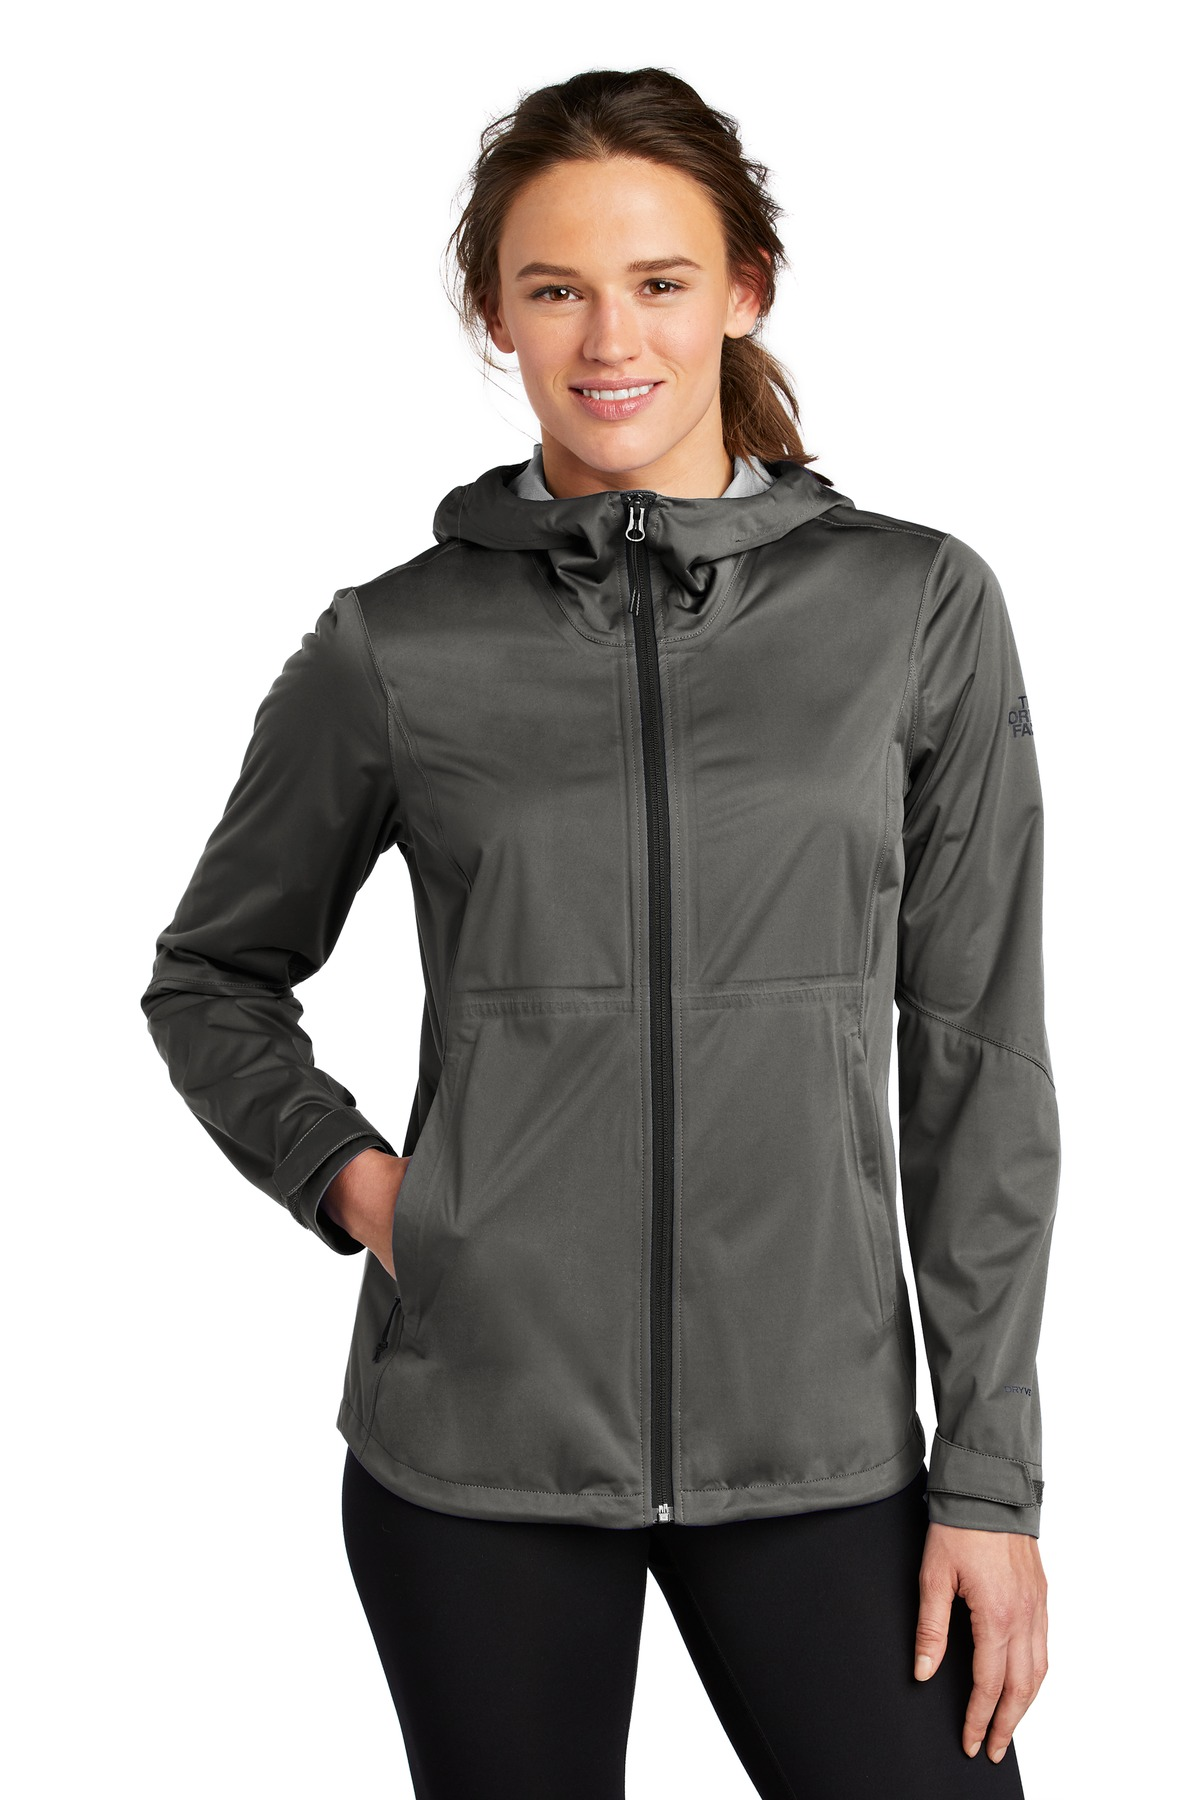 The North Face  ®  Ladies All-Weather DryVent  ™  Stretch Jacket NF0A47FH - Asphalt Grey